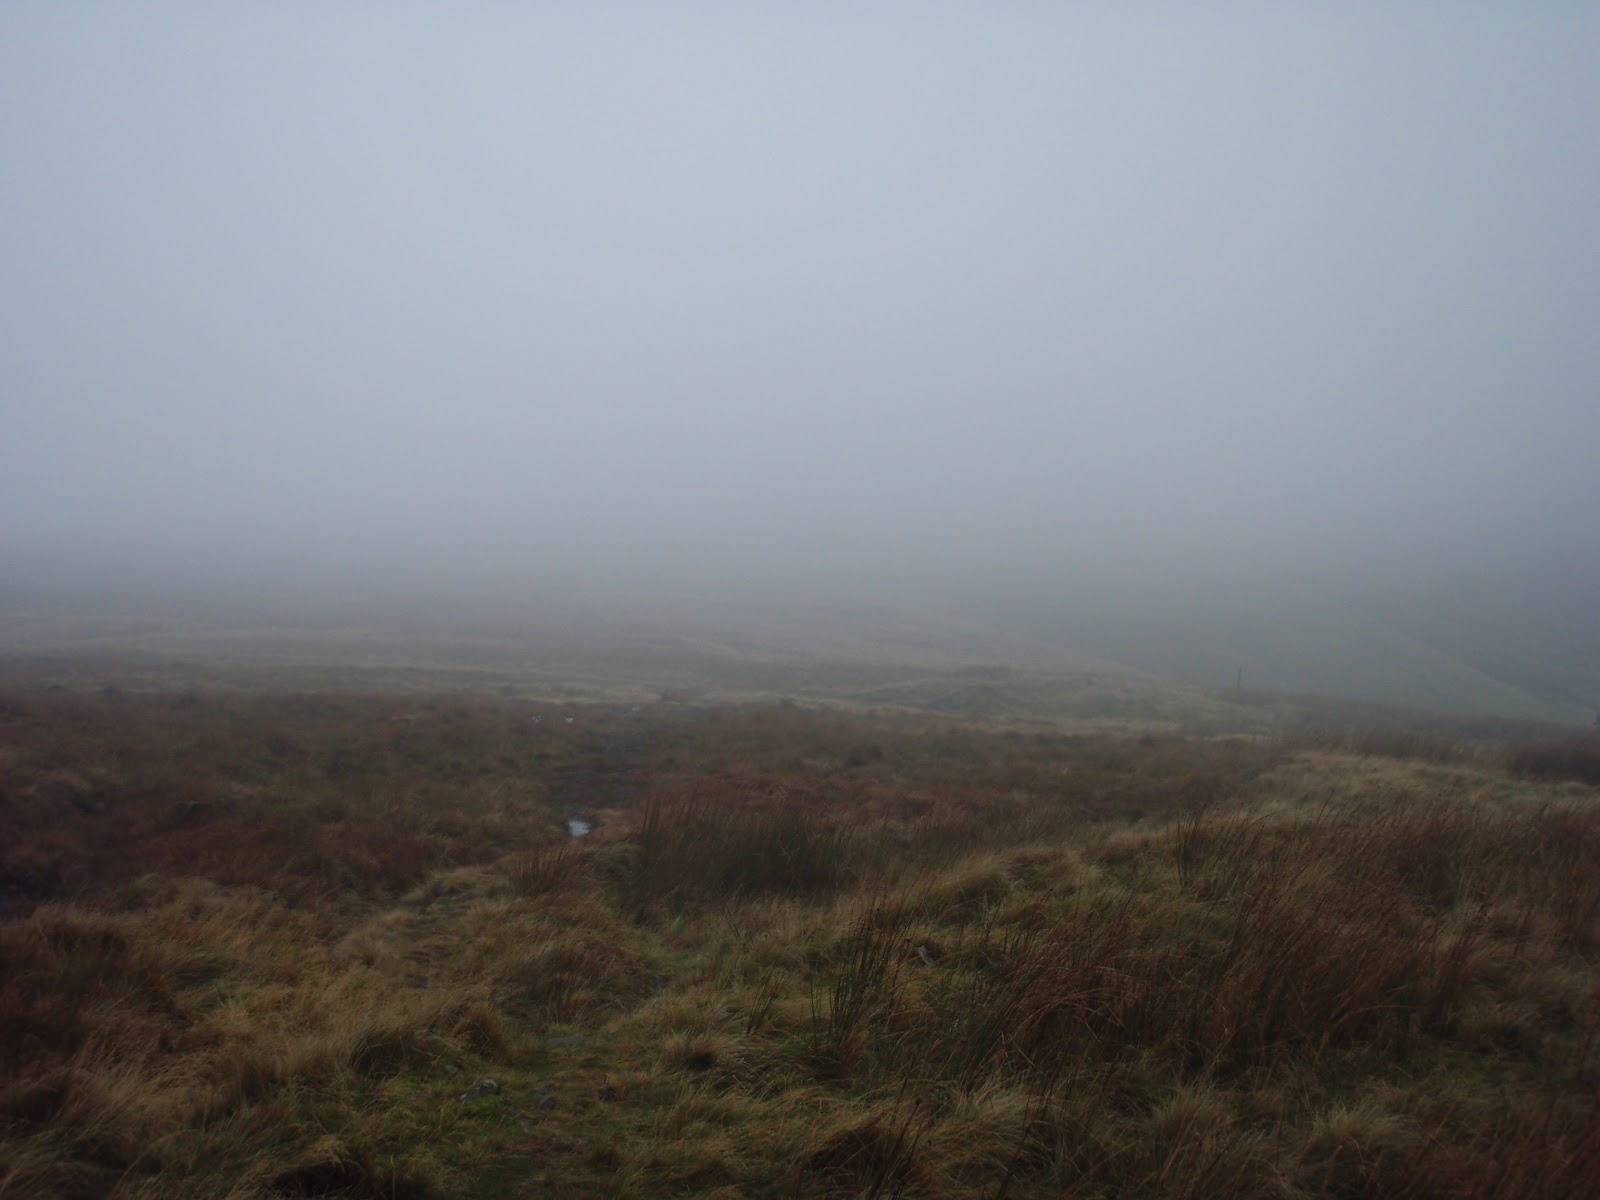 foggy conditions on the Edale Skyline